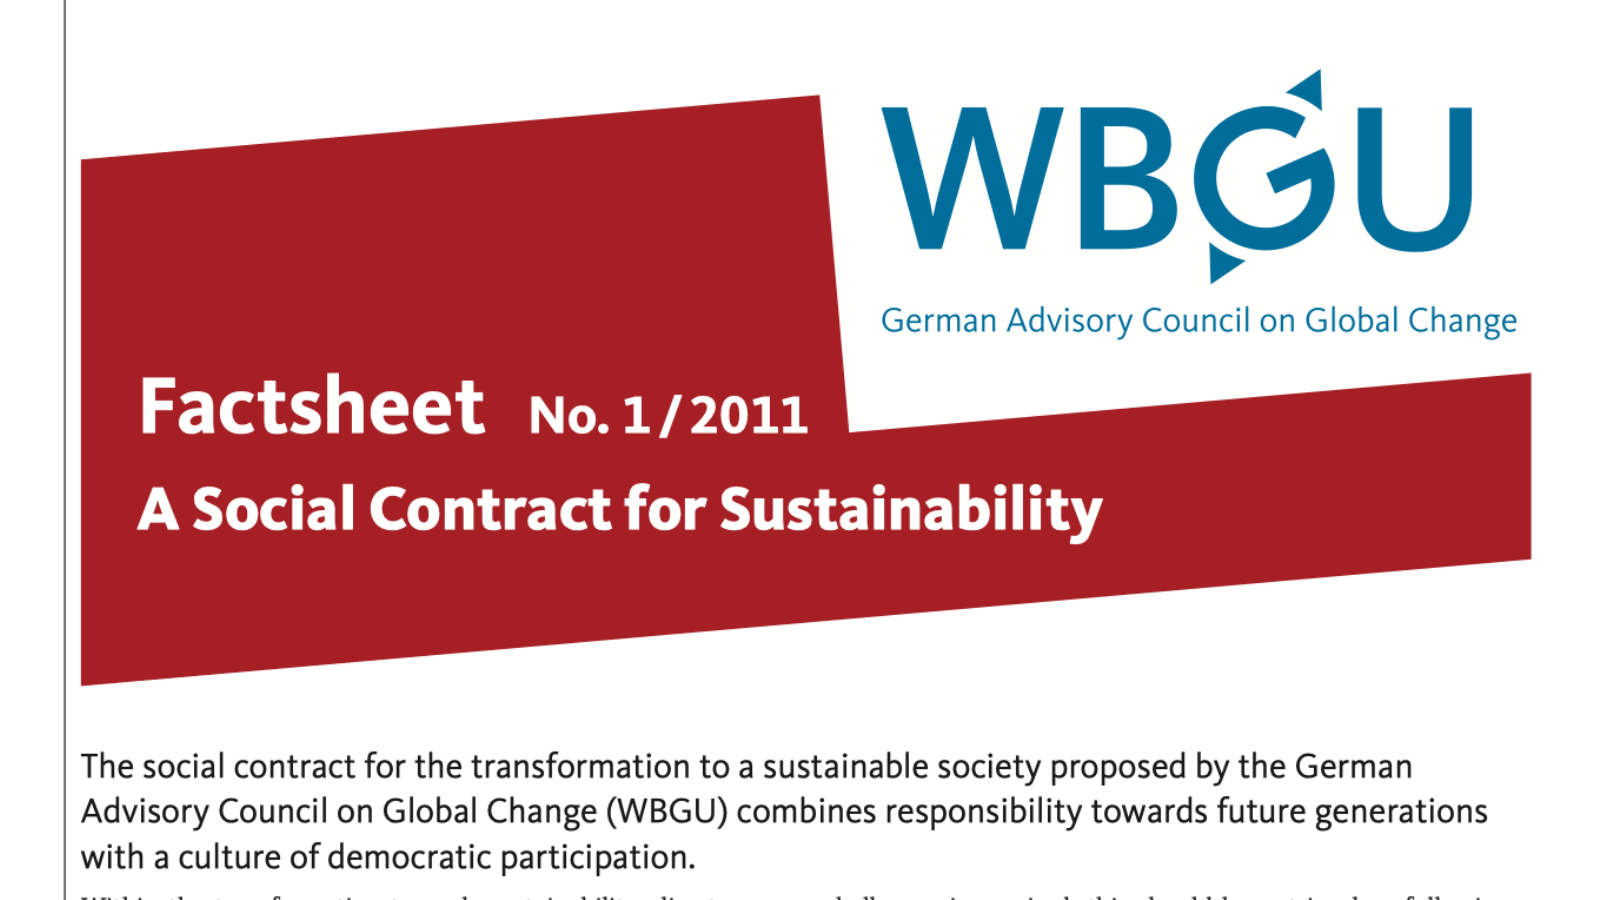 Factsheet: A Social Contract for Sustainability